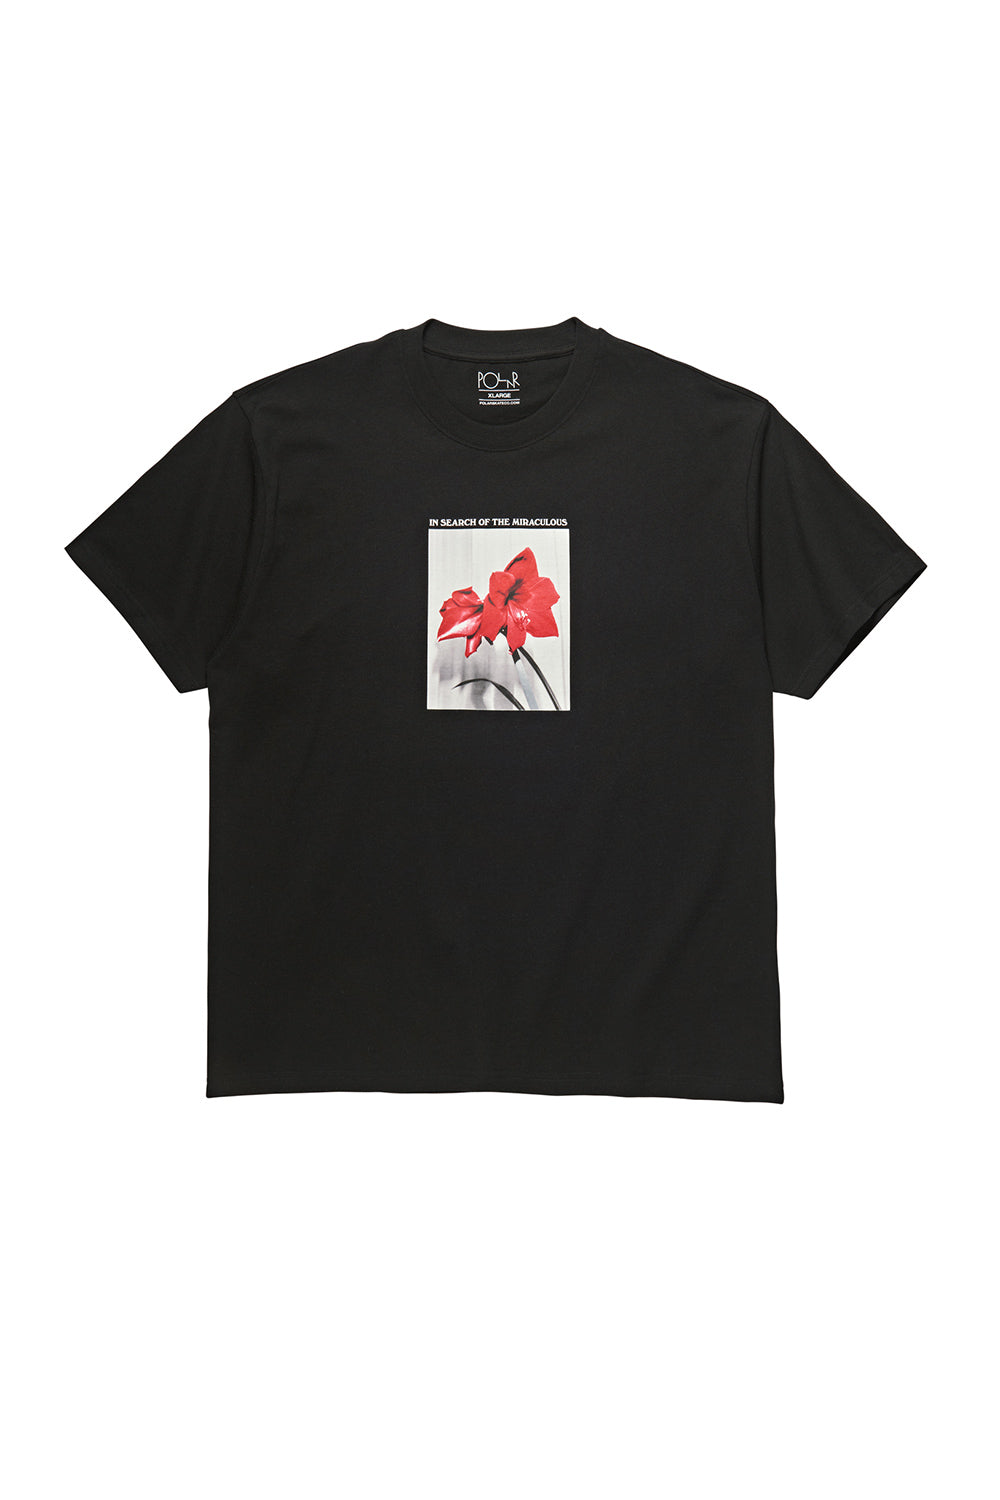 Polar Skate Co In Search of the Miraculous Tee - Black | Polar Skate Co Online